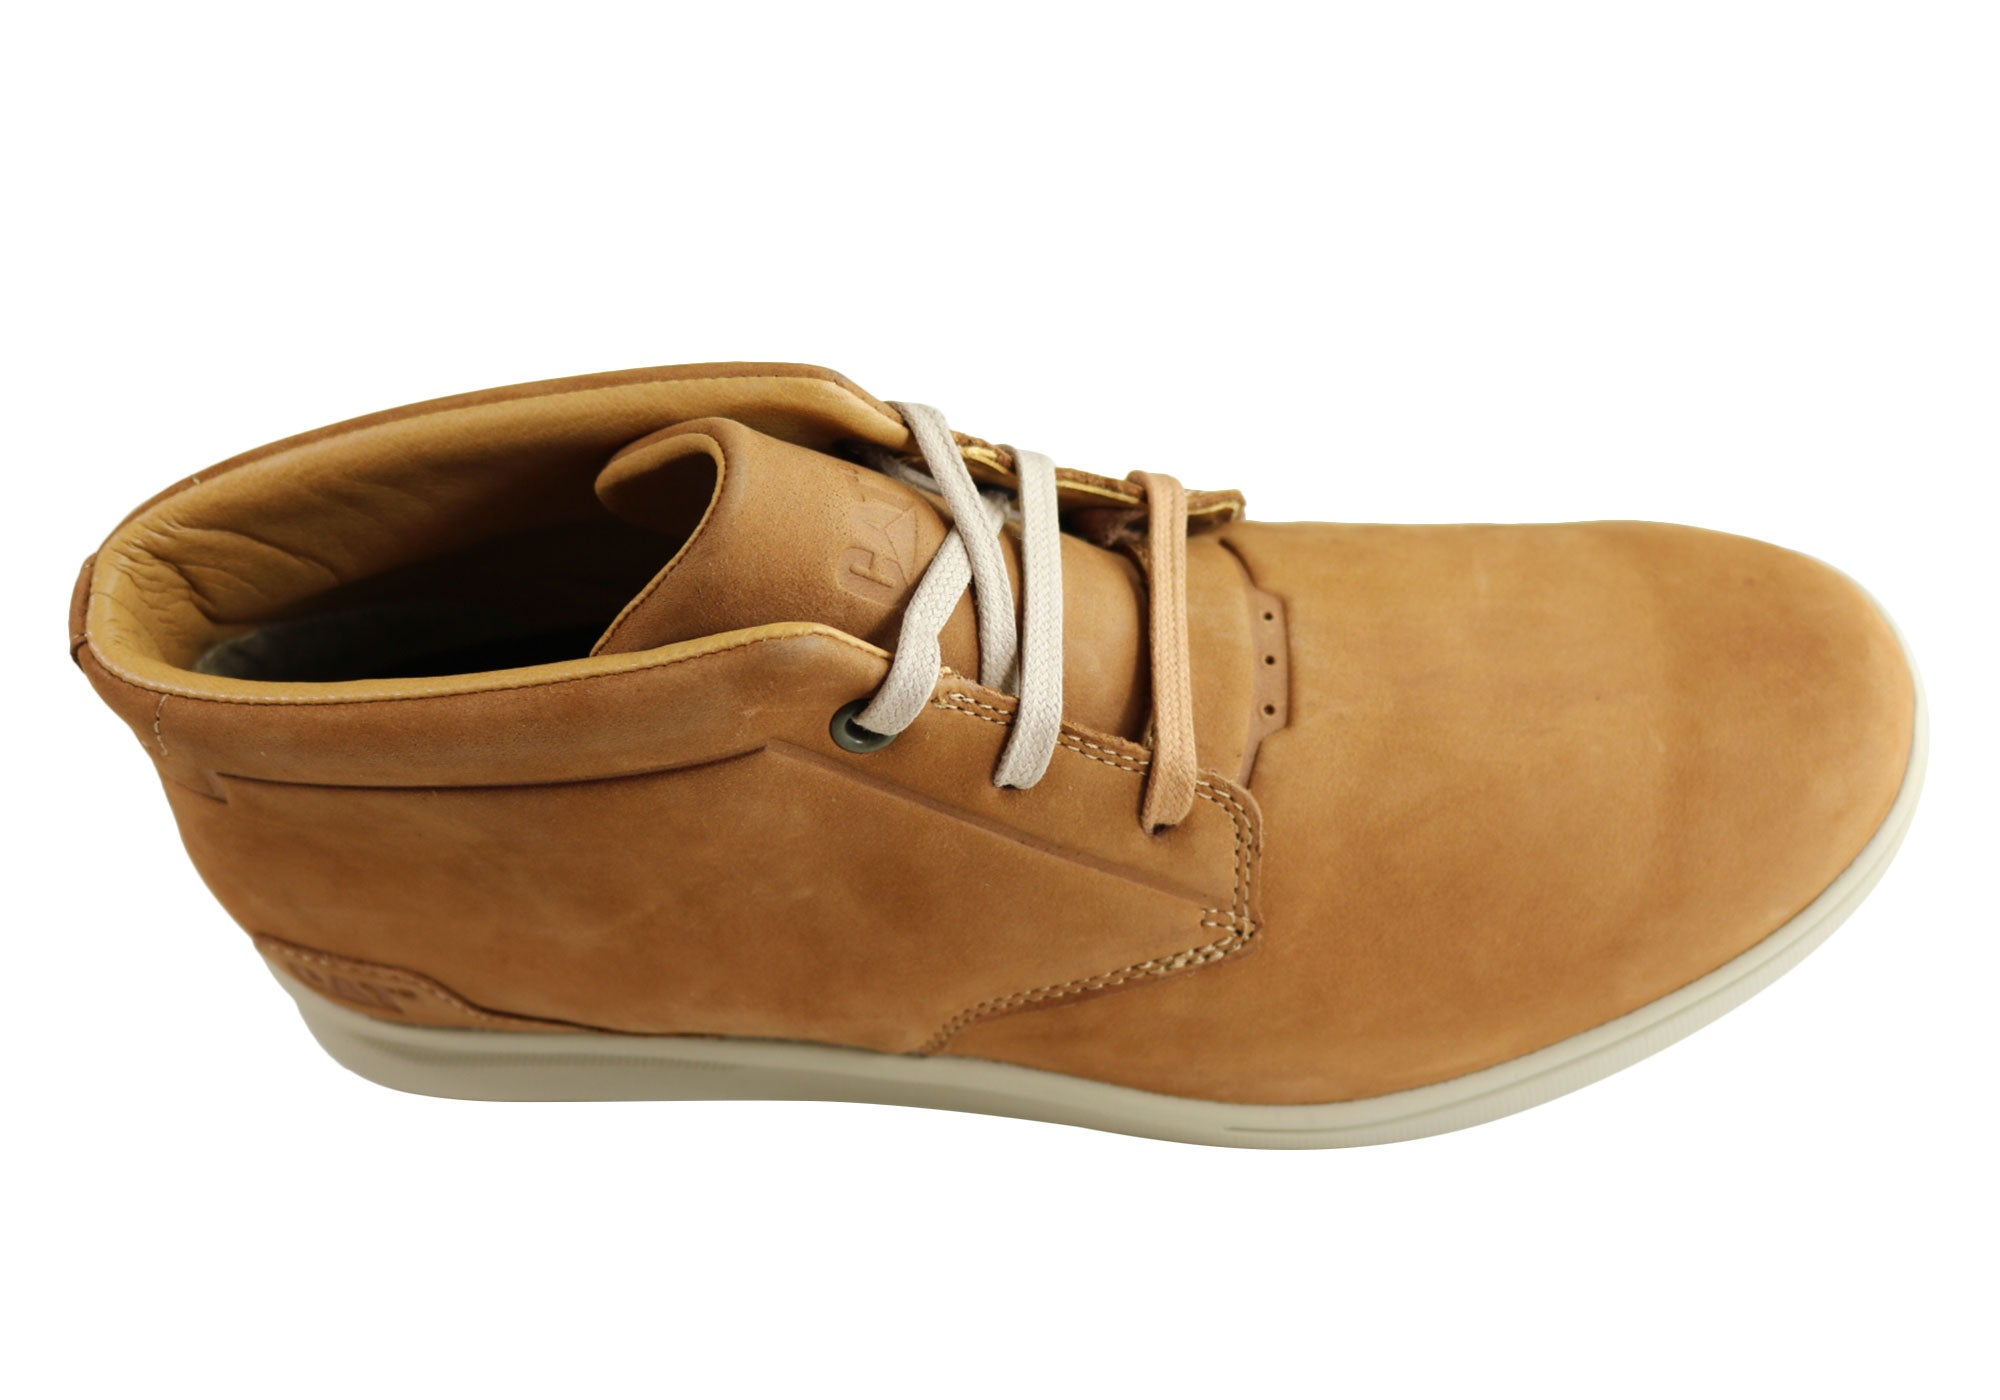 Brand-New-Caterpillar-Theorem-Mens-Lace-Up-Leather-Comfortable-Casual-Boots thumbnail 10